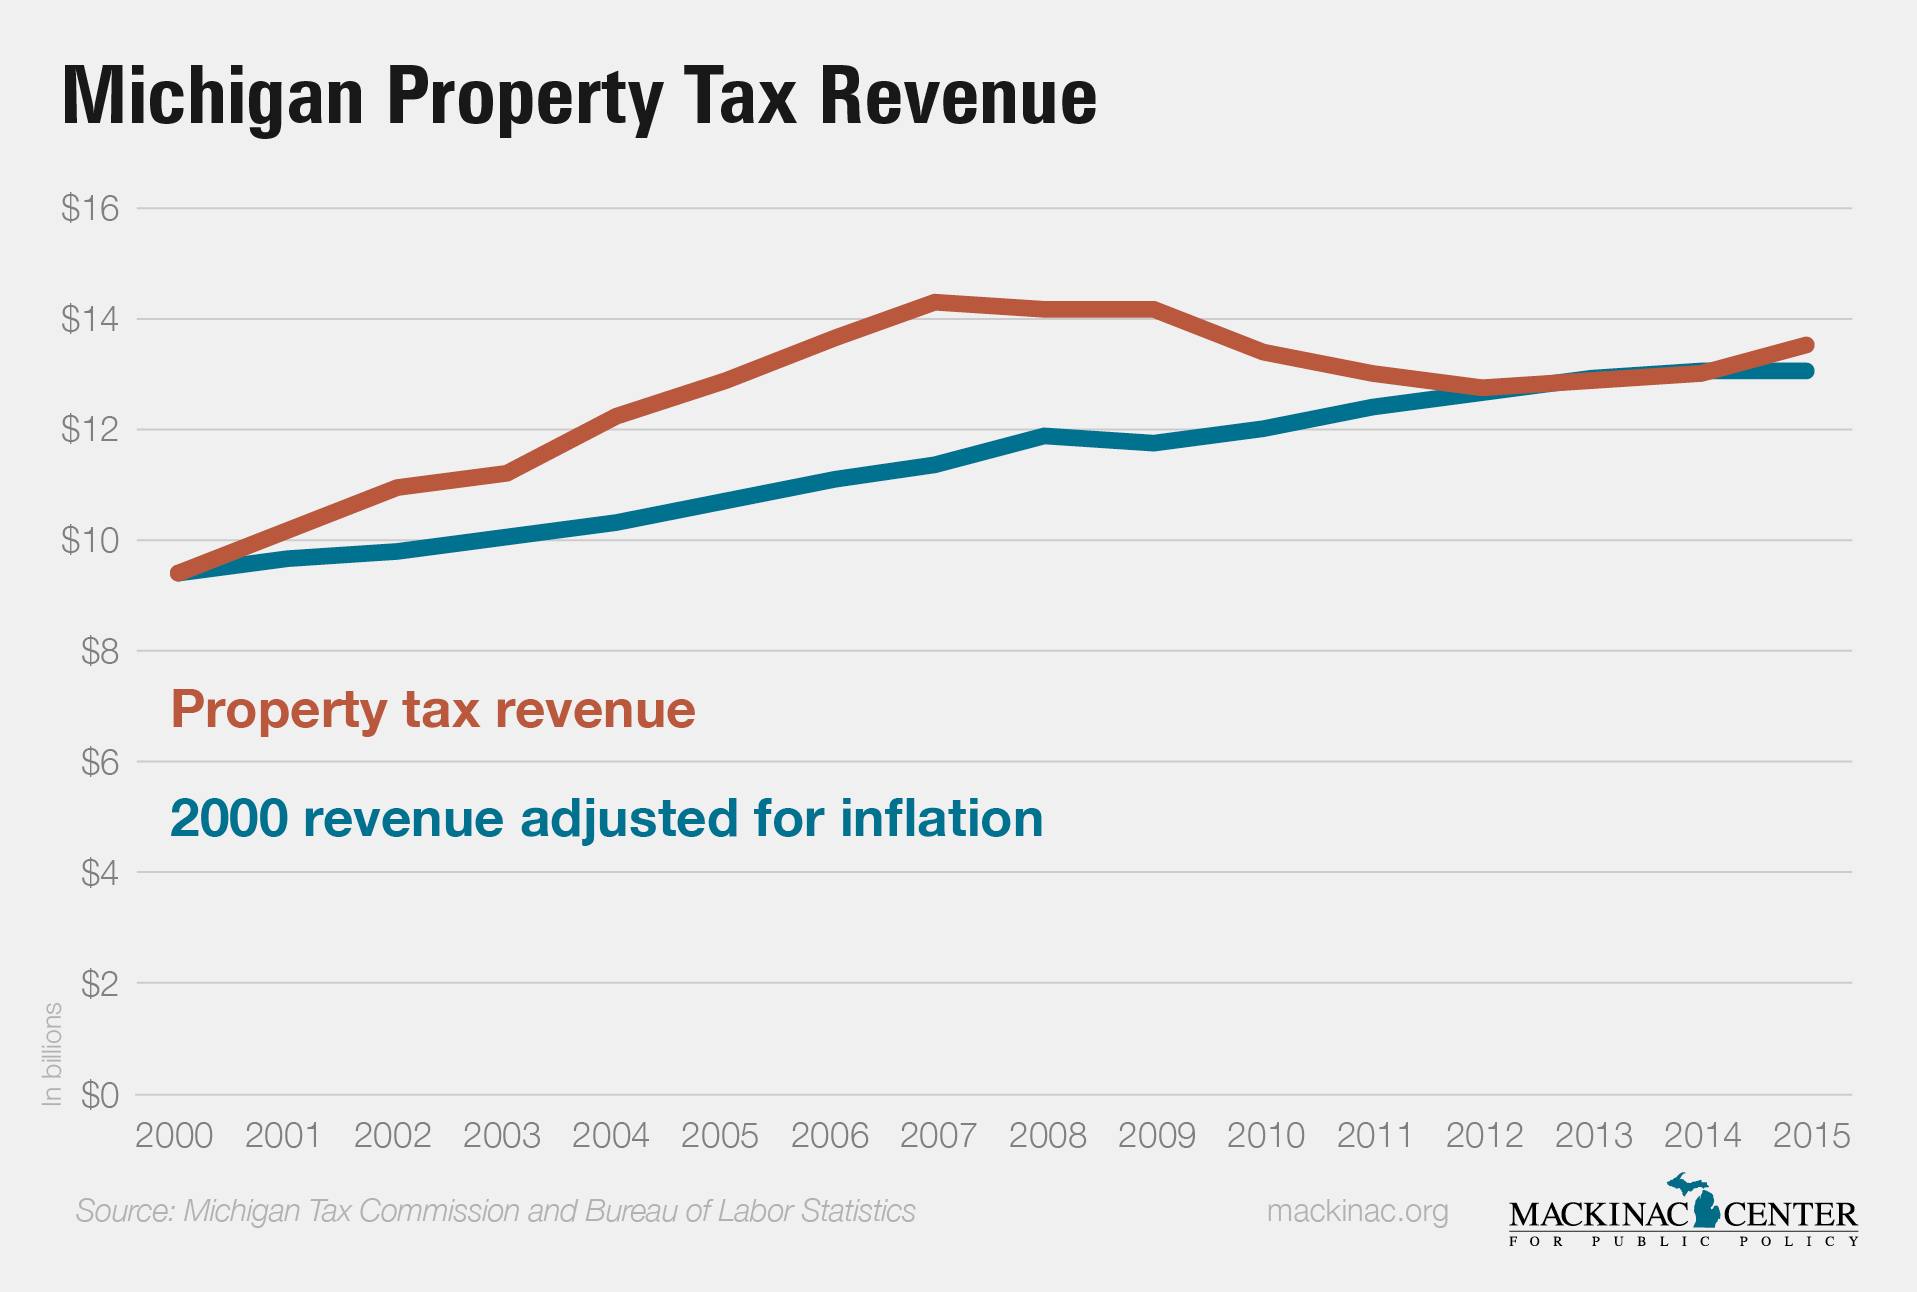 Michigan Property Tax Revenue